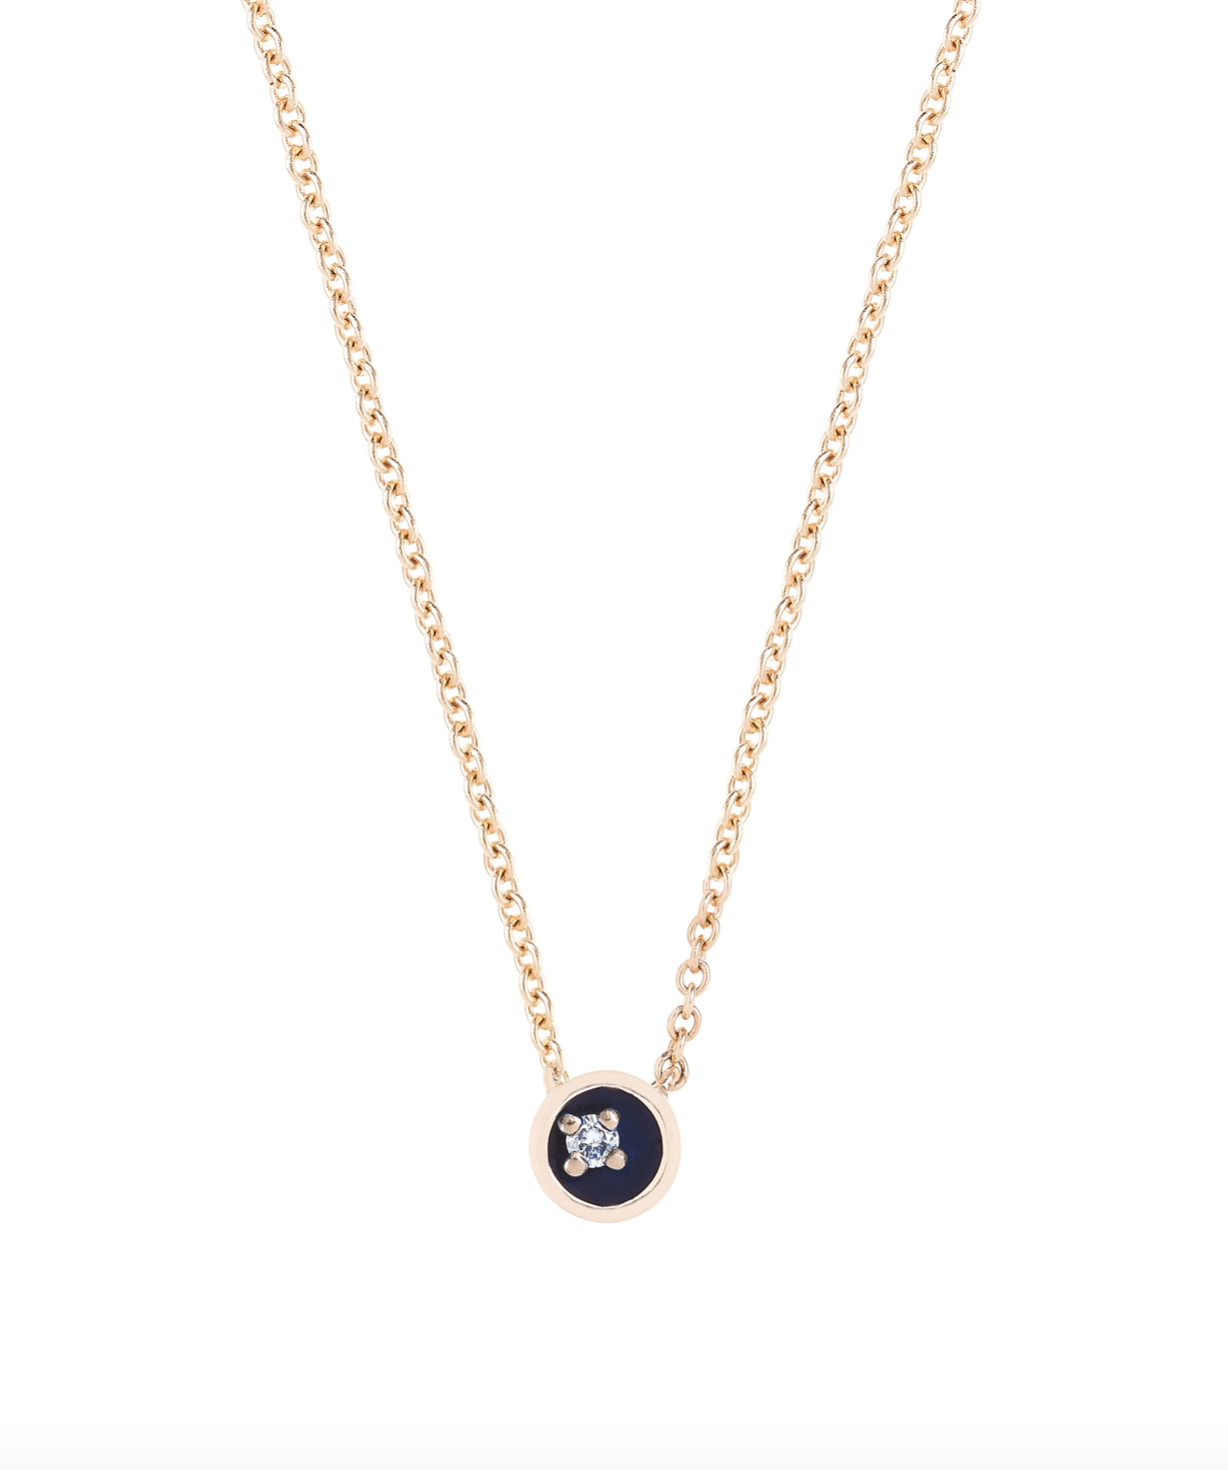 Small Floating Star Diamond Midnight Enamel Necklace by Marmari on curated-crowd.com